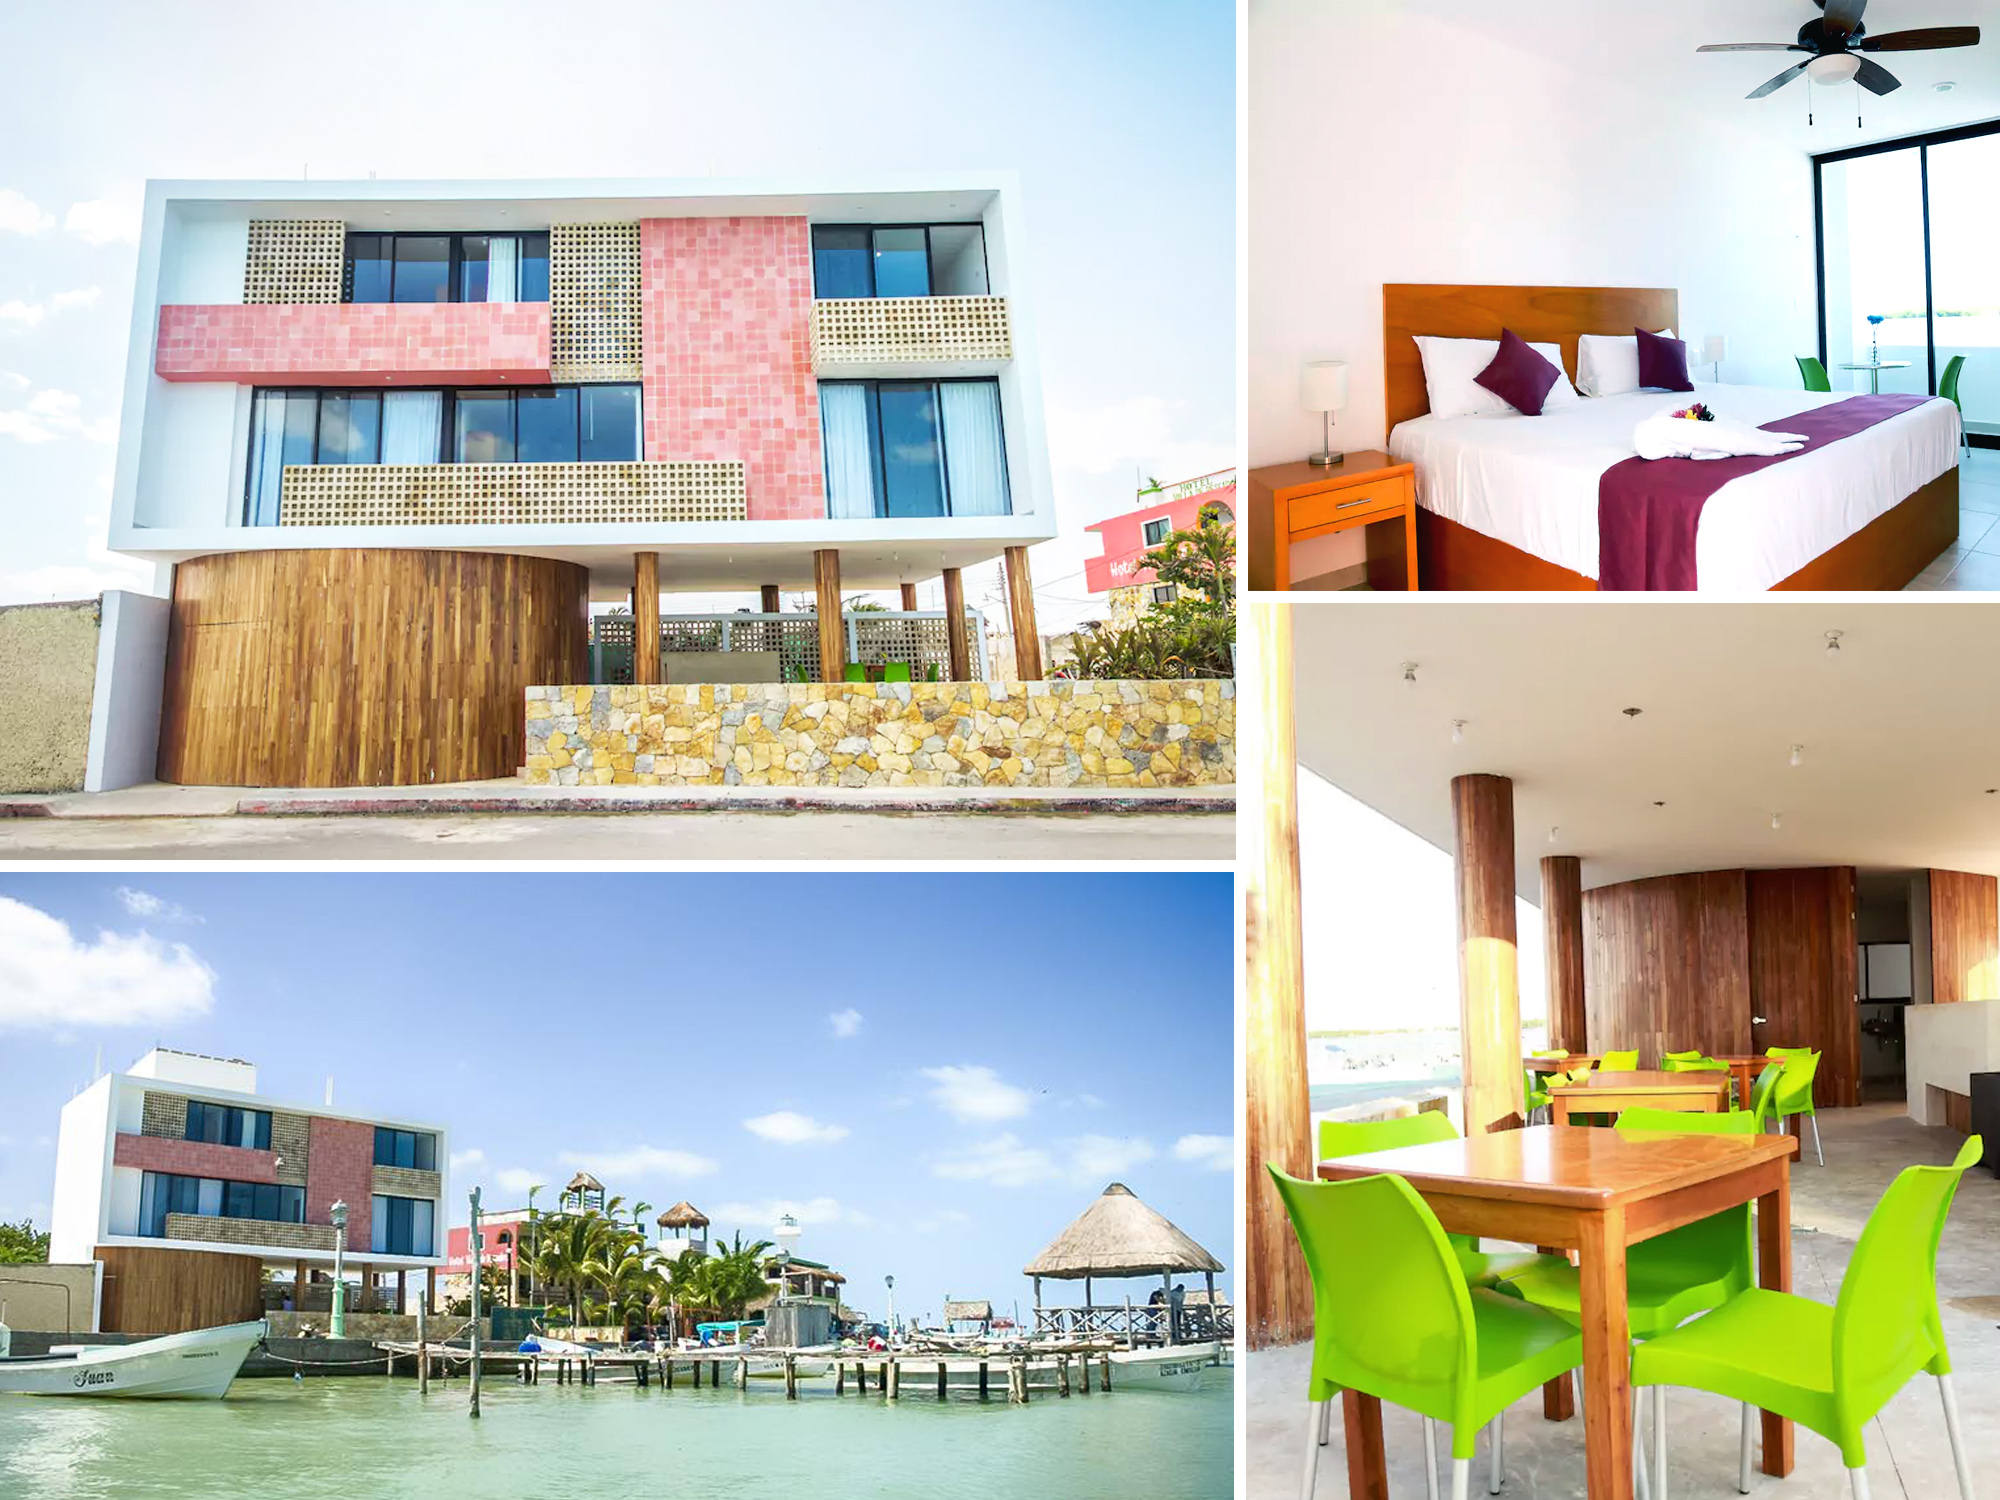 A collage of the exterior and interiors of Yuum Ha Boutique Hotel, Rio Lagartos, Mexico.